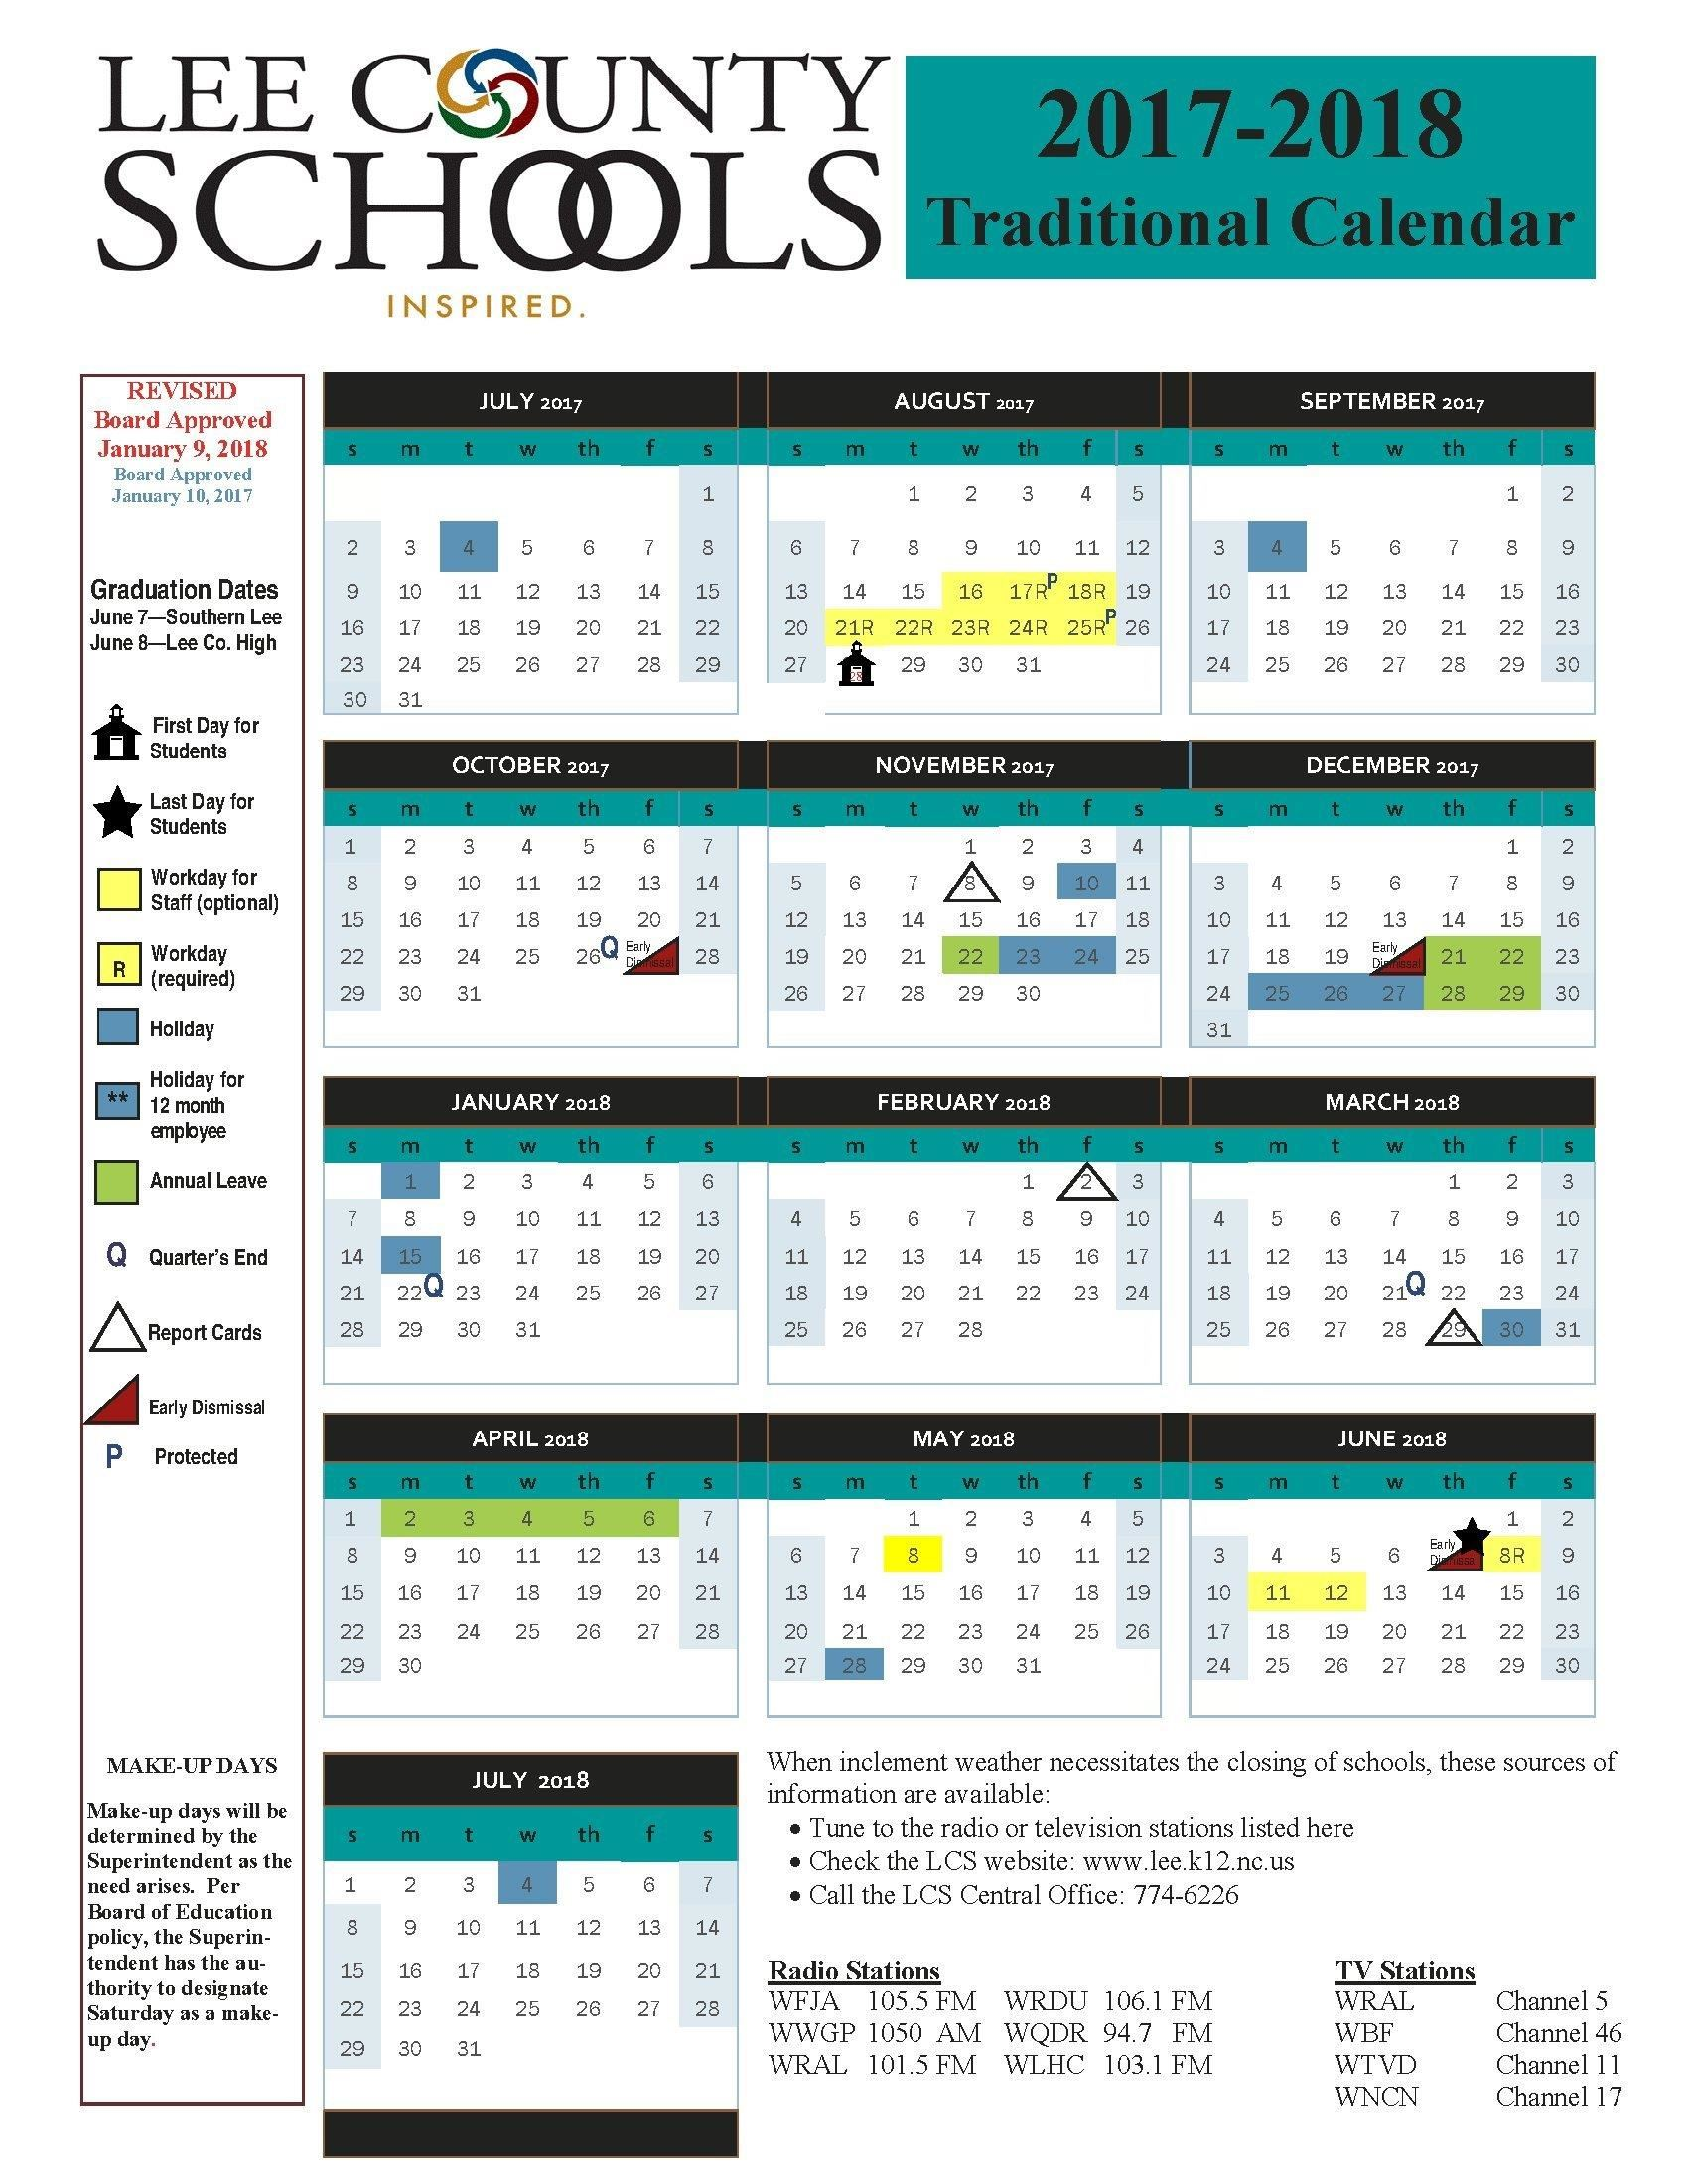 Revised Calendar Changes for 2017-2018 School Year